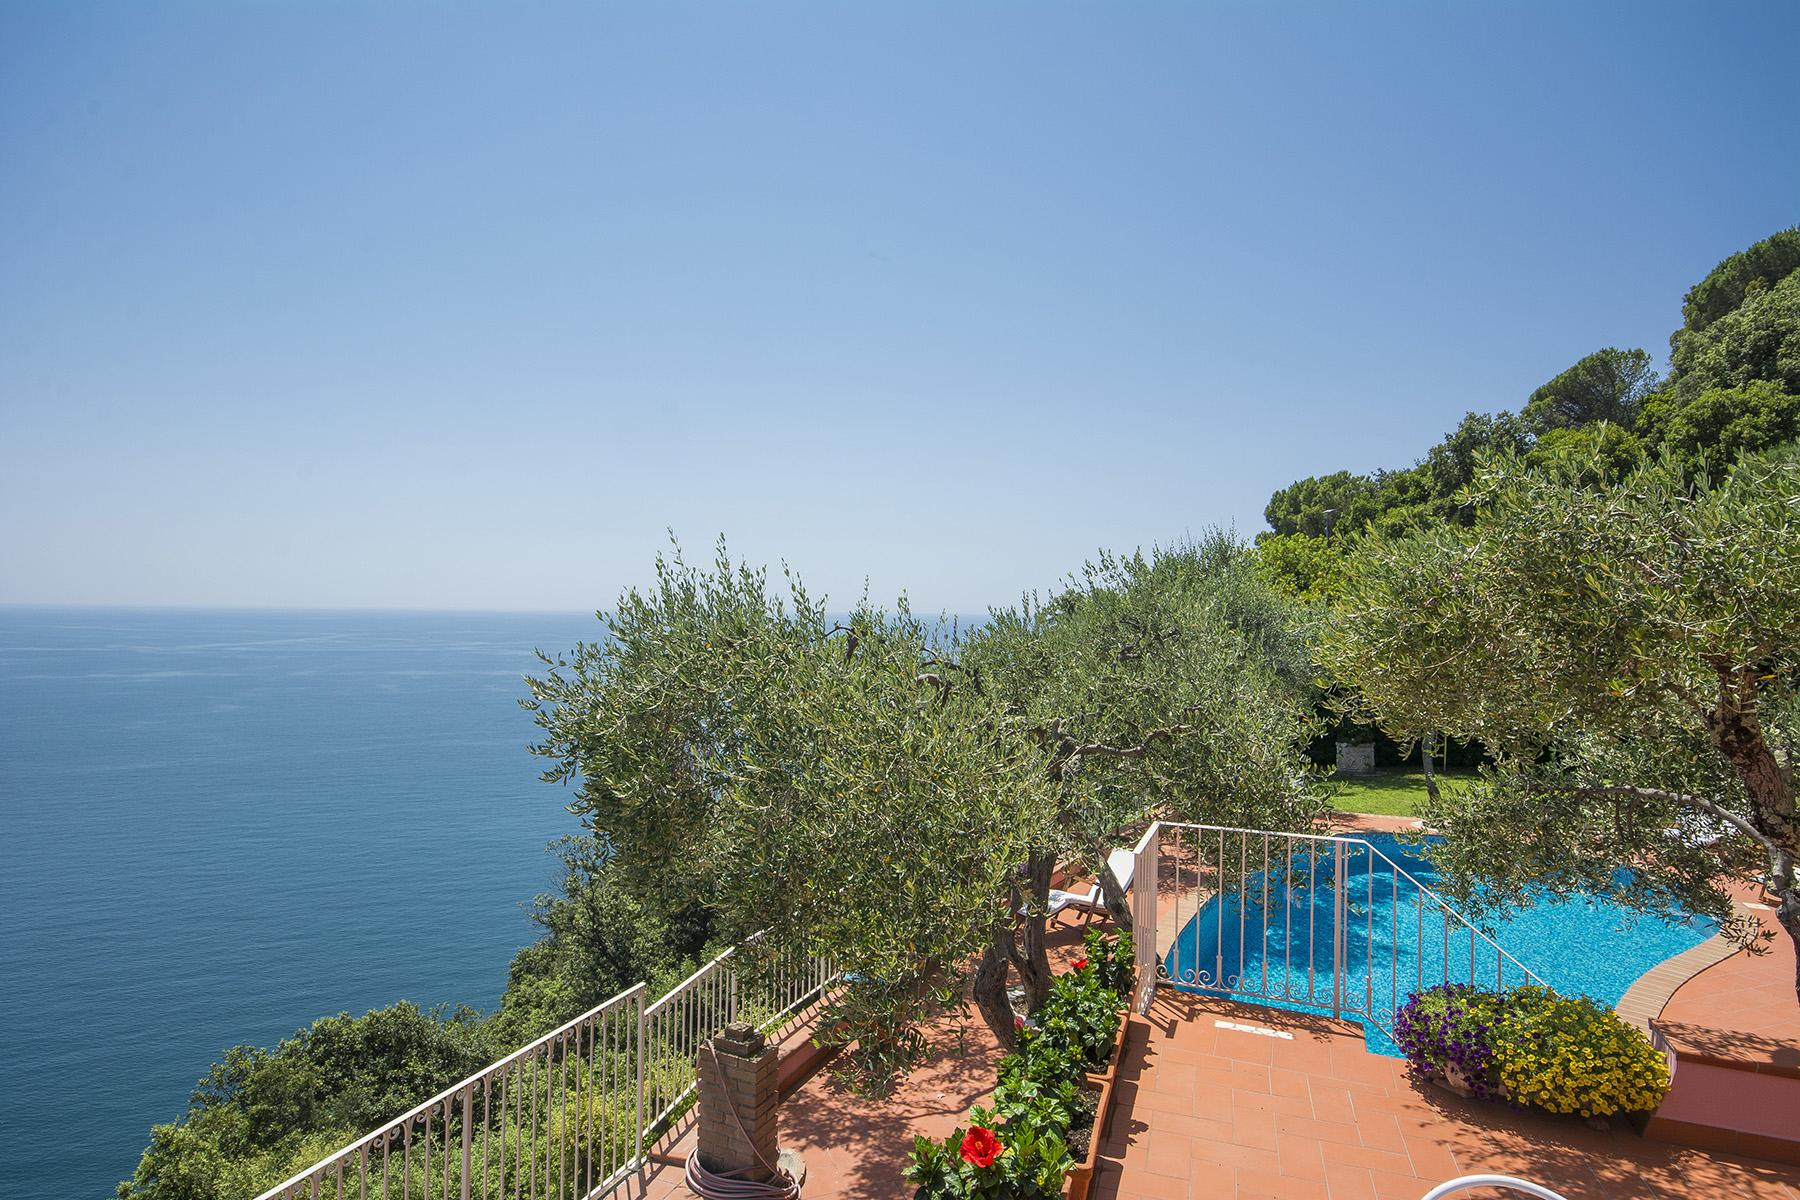 Charming luxury villa with swimming pool overlooking the Ligurian sea - 3